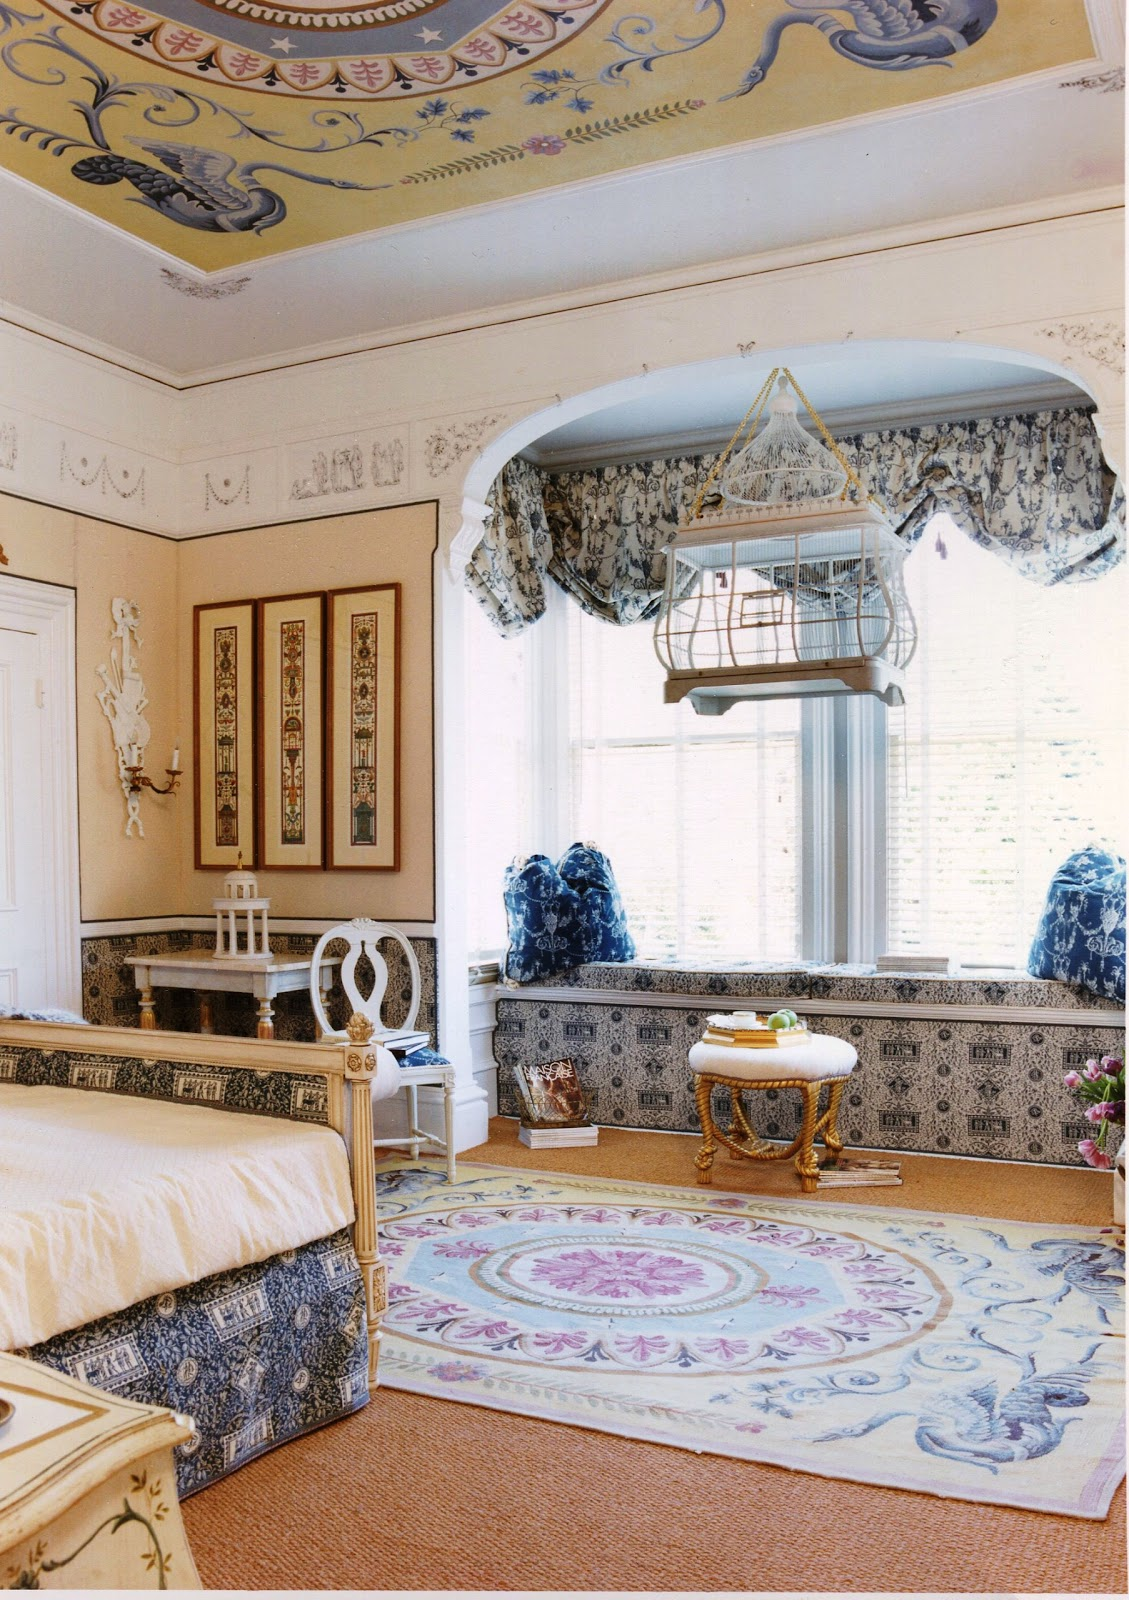 Gail green interiors tricks of the trade ceilings for To the trade only interior design